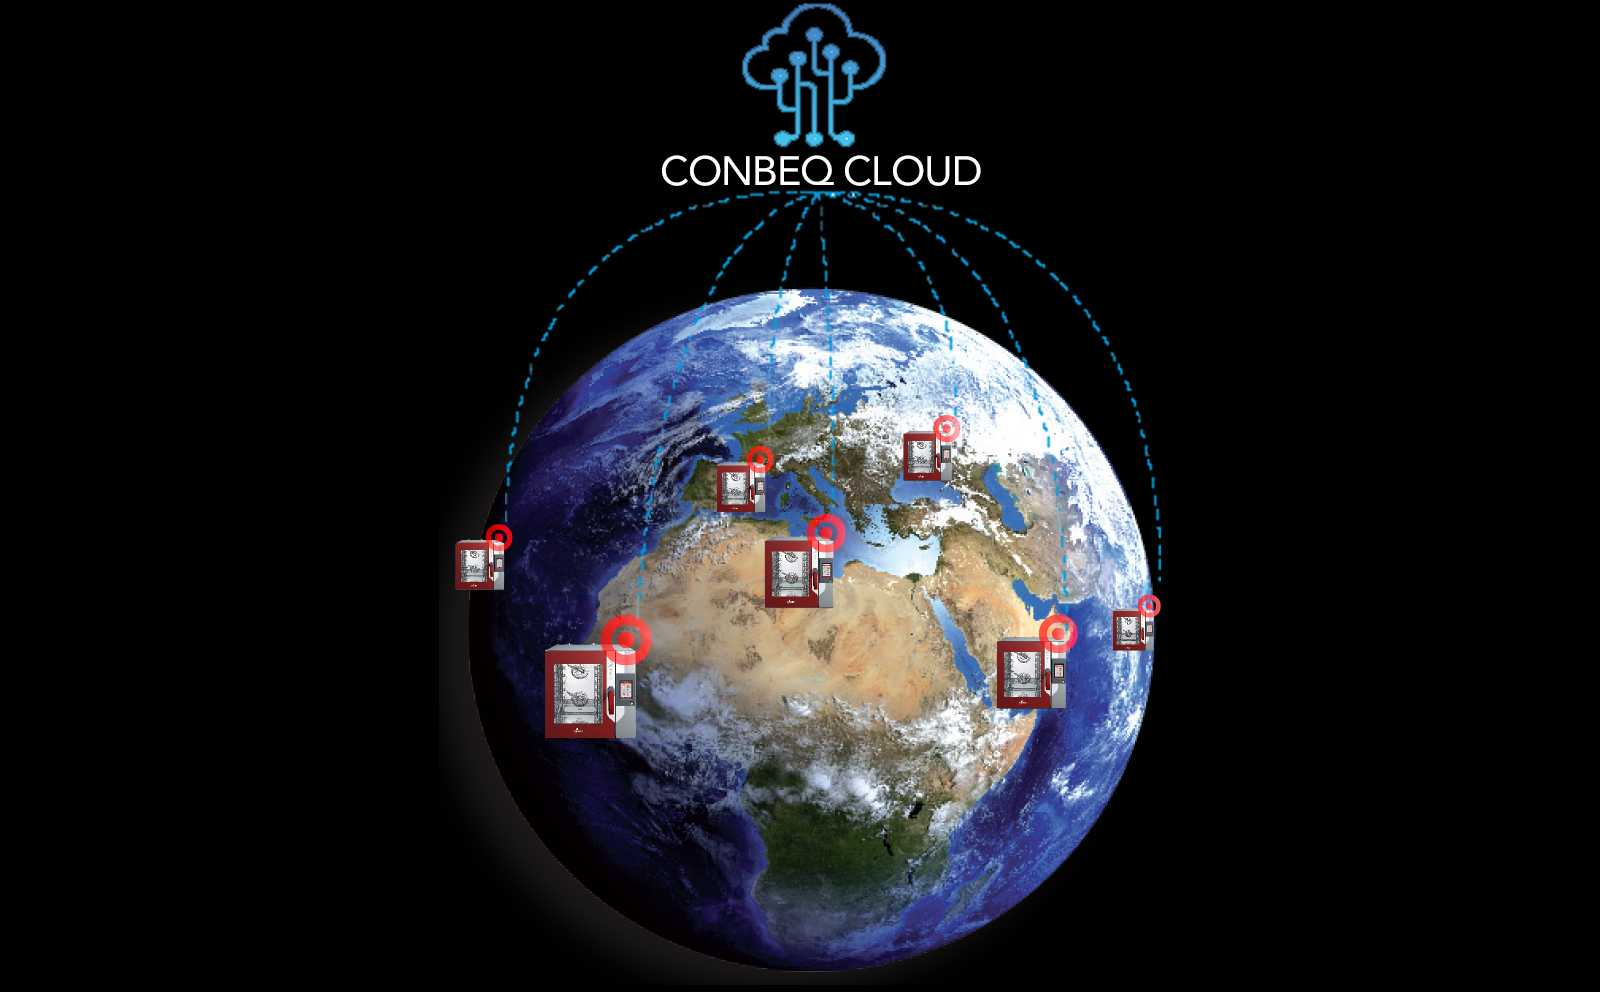 CONBEQ CLOUD